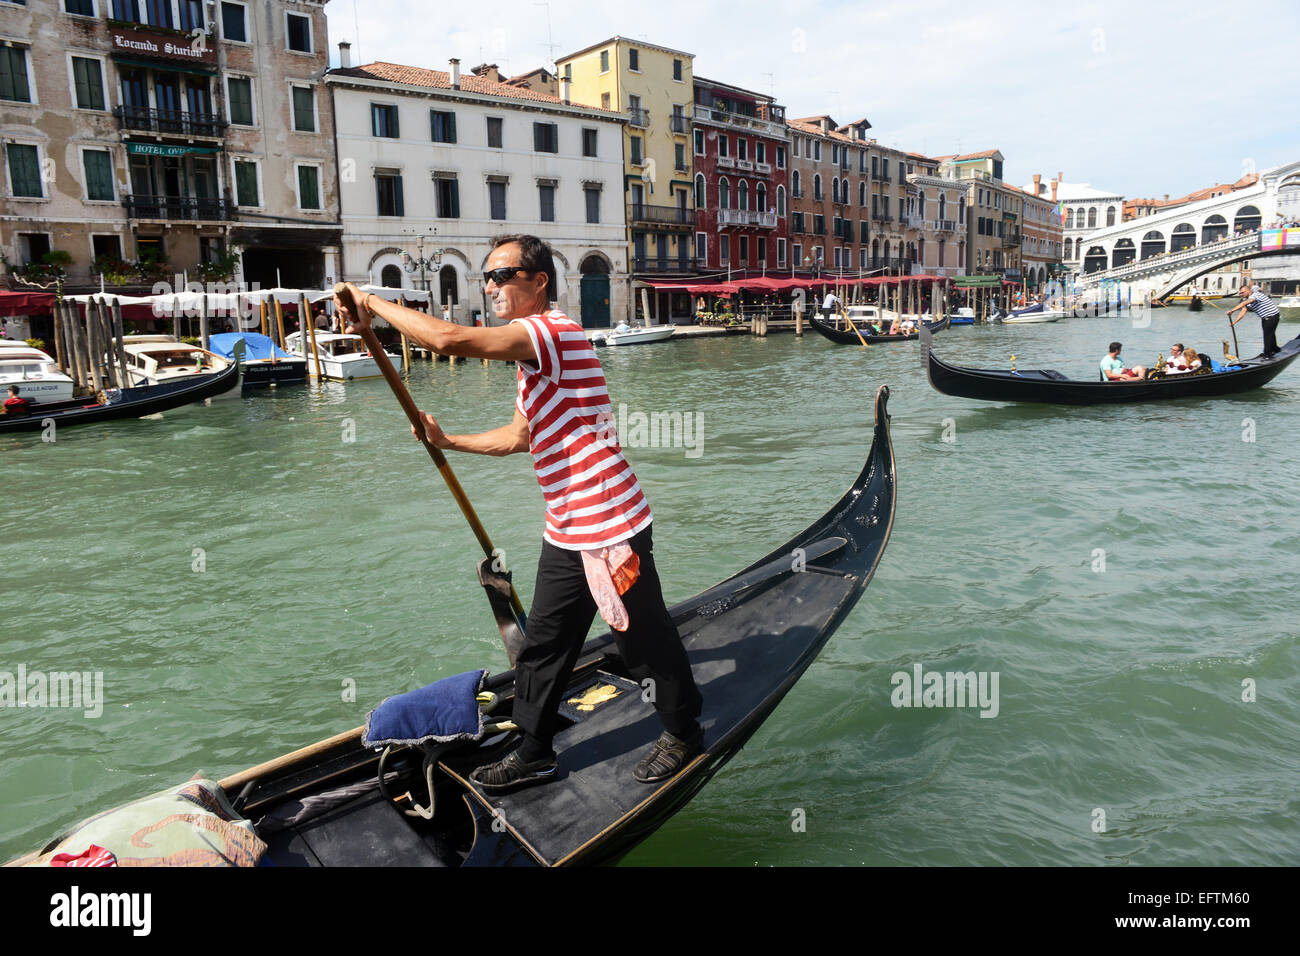 Gondolier steers his gondola up and down the Grand Canal, Venice Italy. - Stock Image